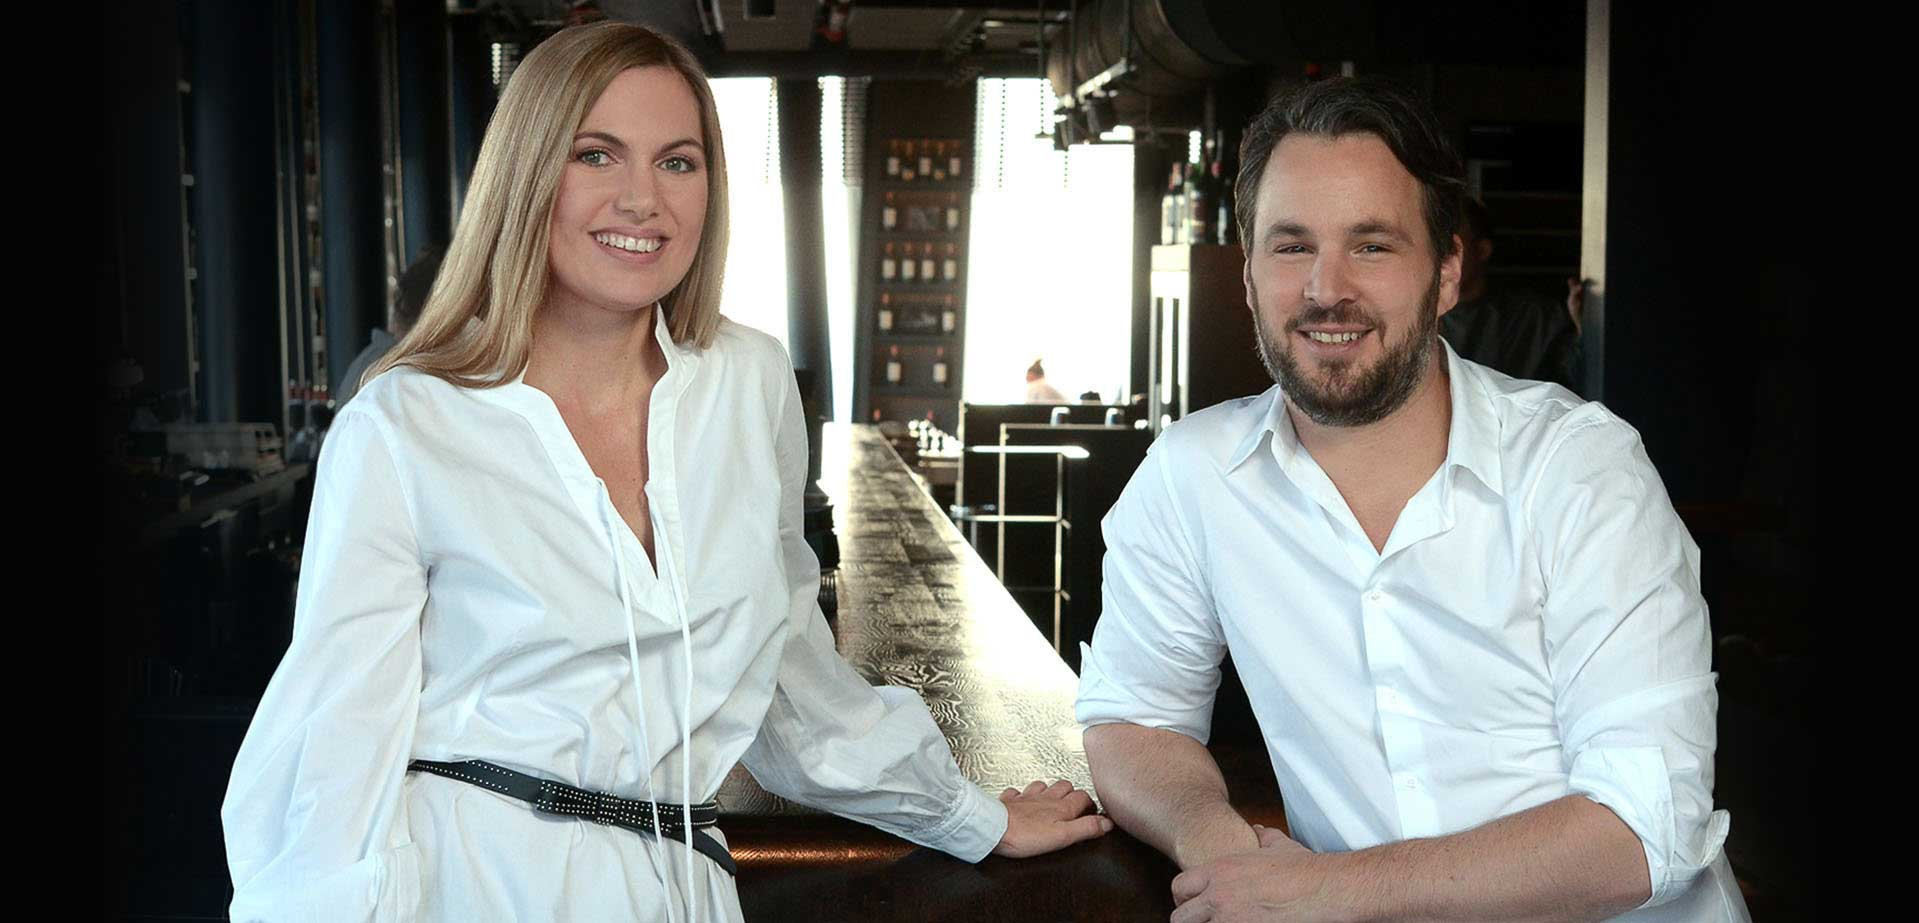 Amberlair Crowdsourced Crowdfunded Boutique Hotel - About Kristin Lindenberg & Marcus Orbe, founder of Amberlair